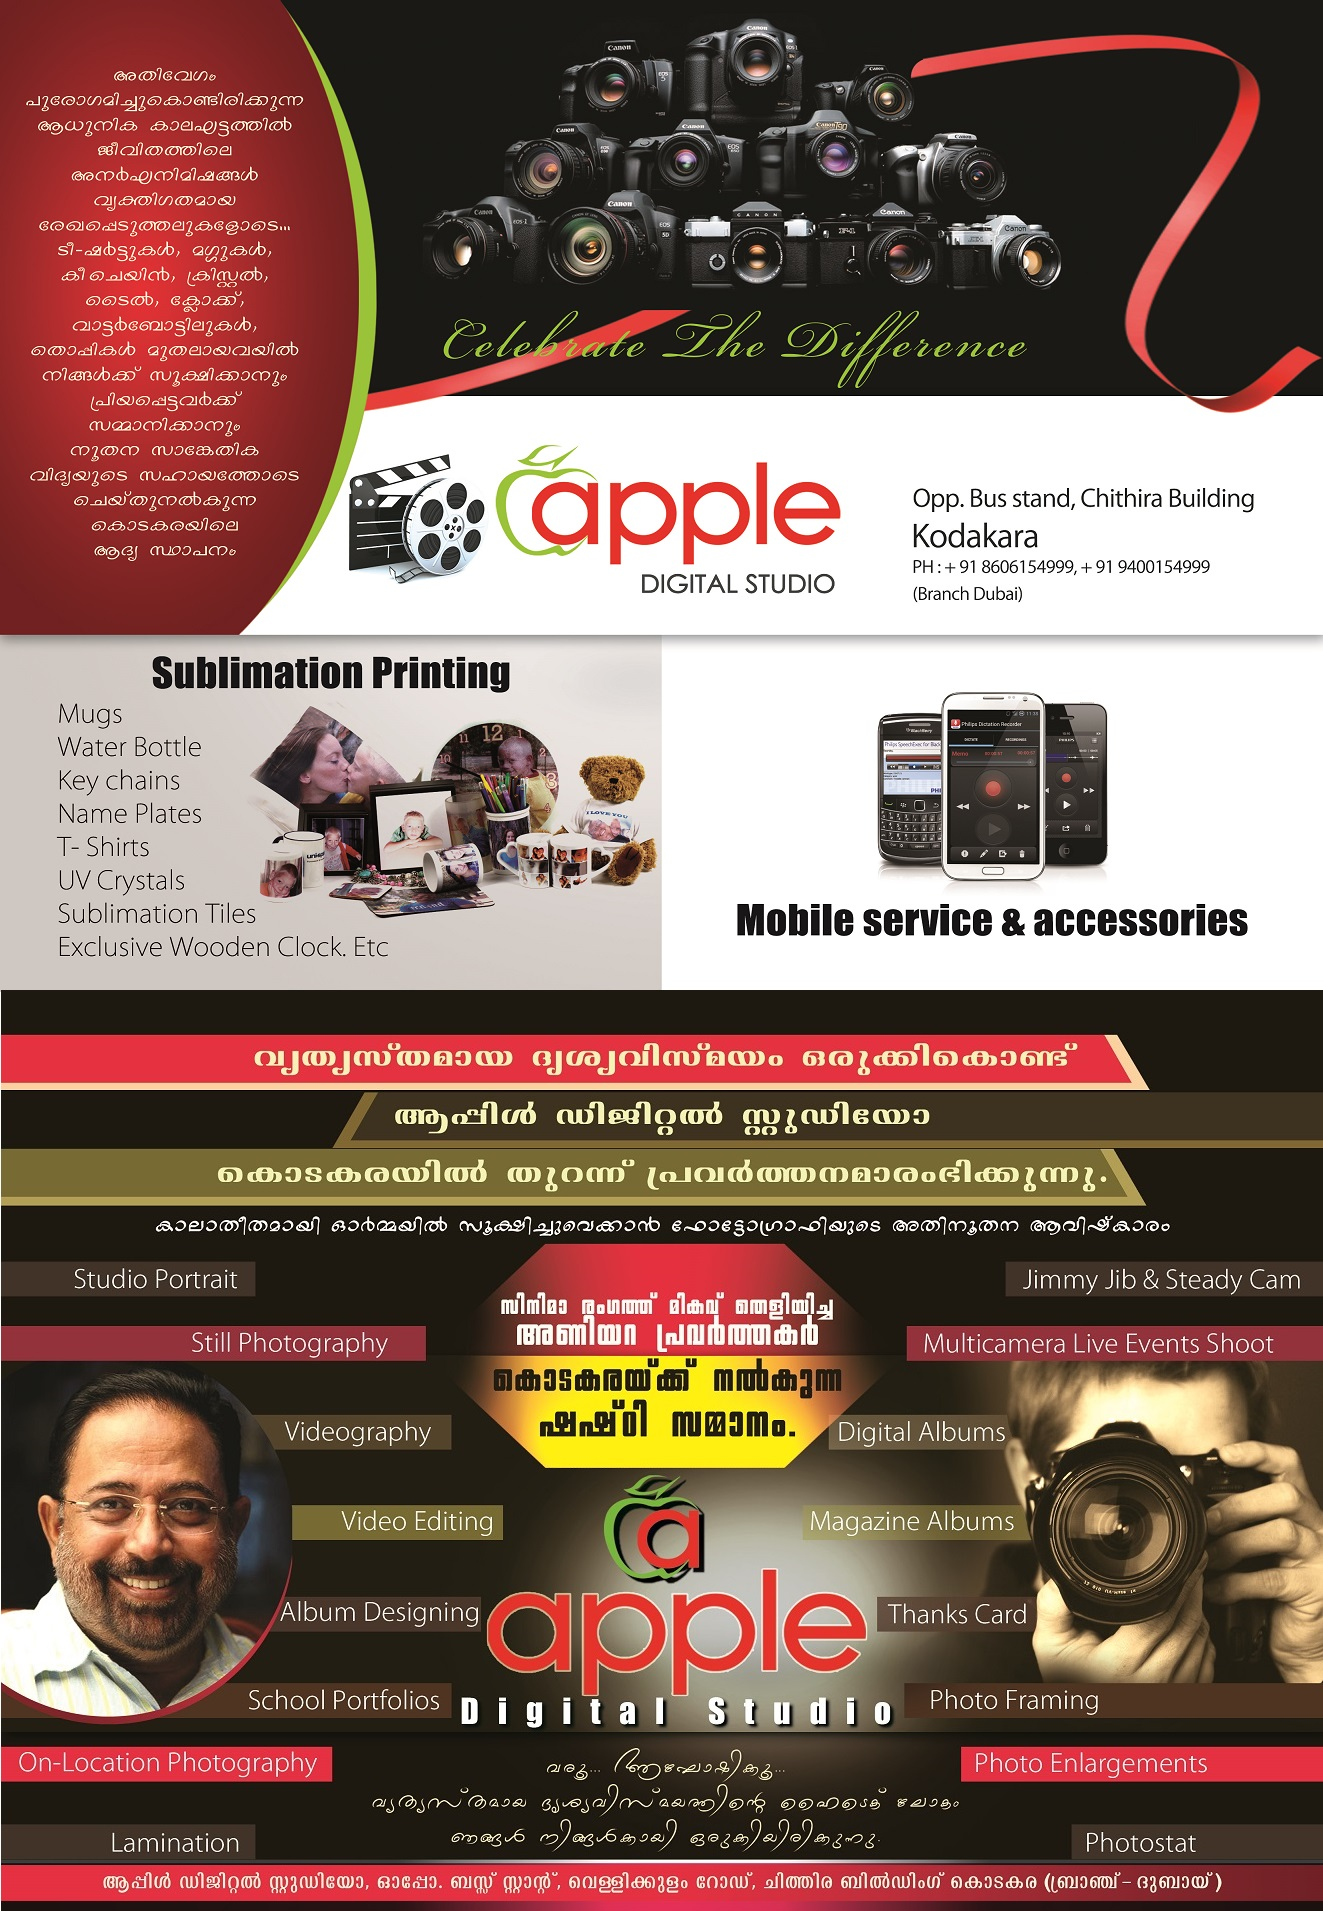 APPLE DIGITAL STUDIO, KODAKARA